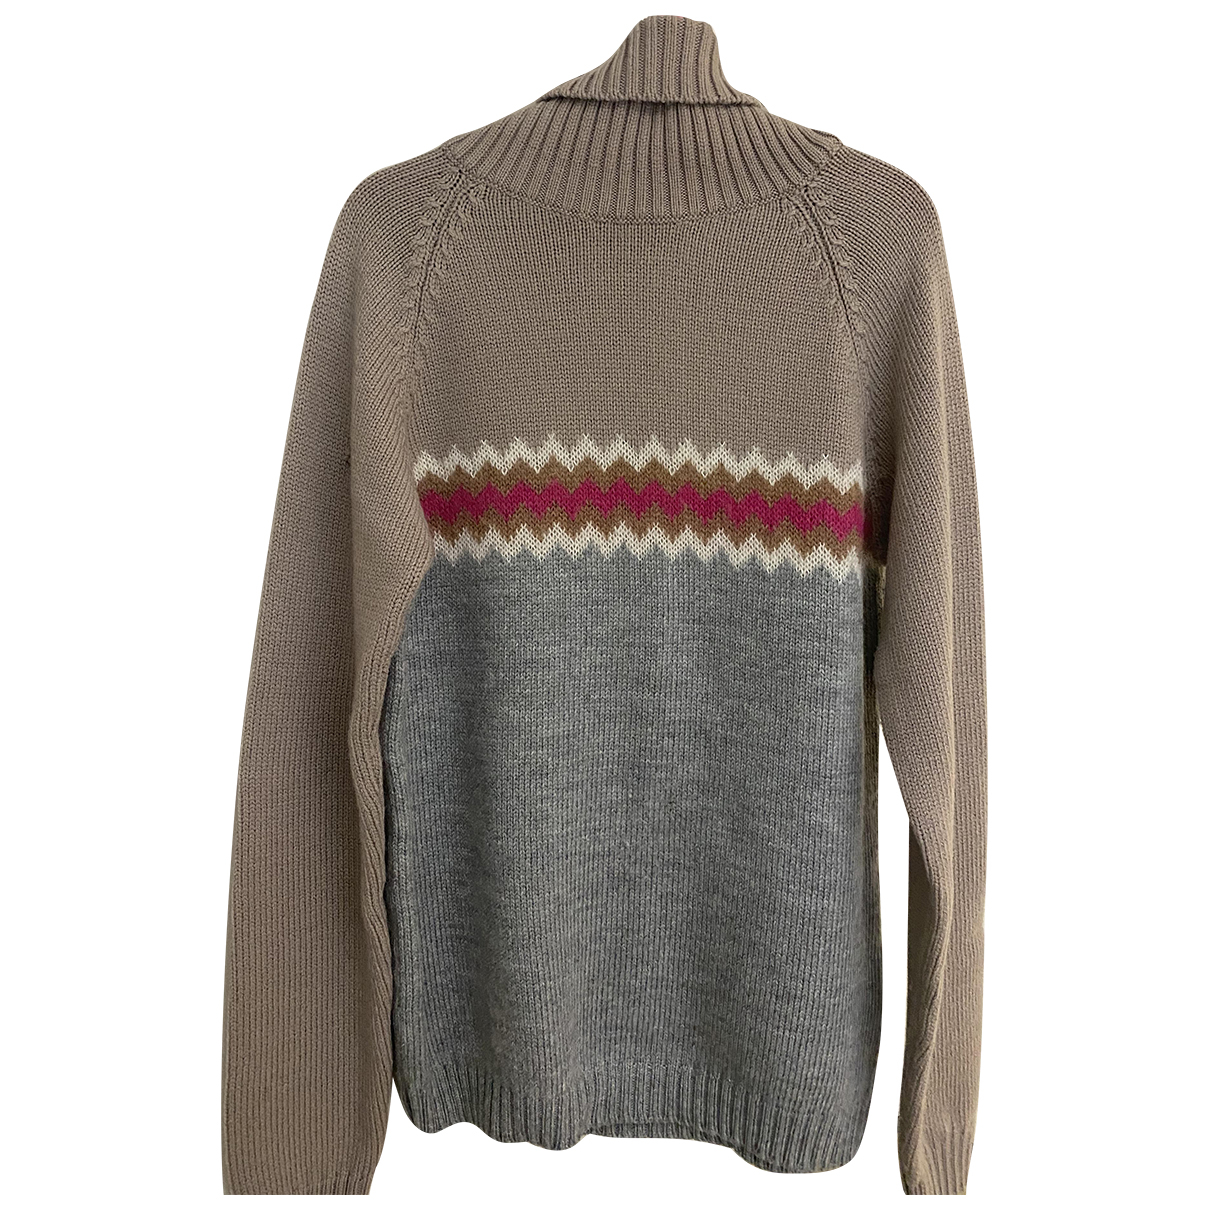 Gucci N Multicolour Cashmere Knitwear for Kids 12 years - XS